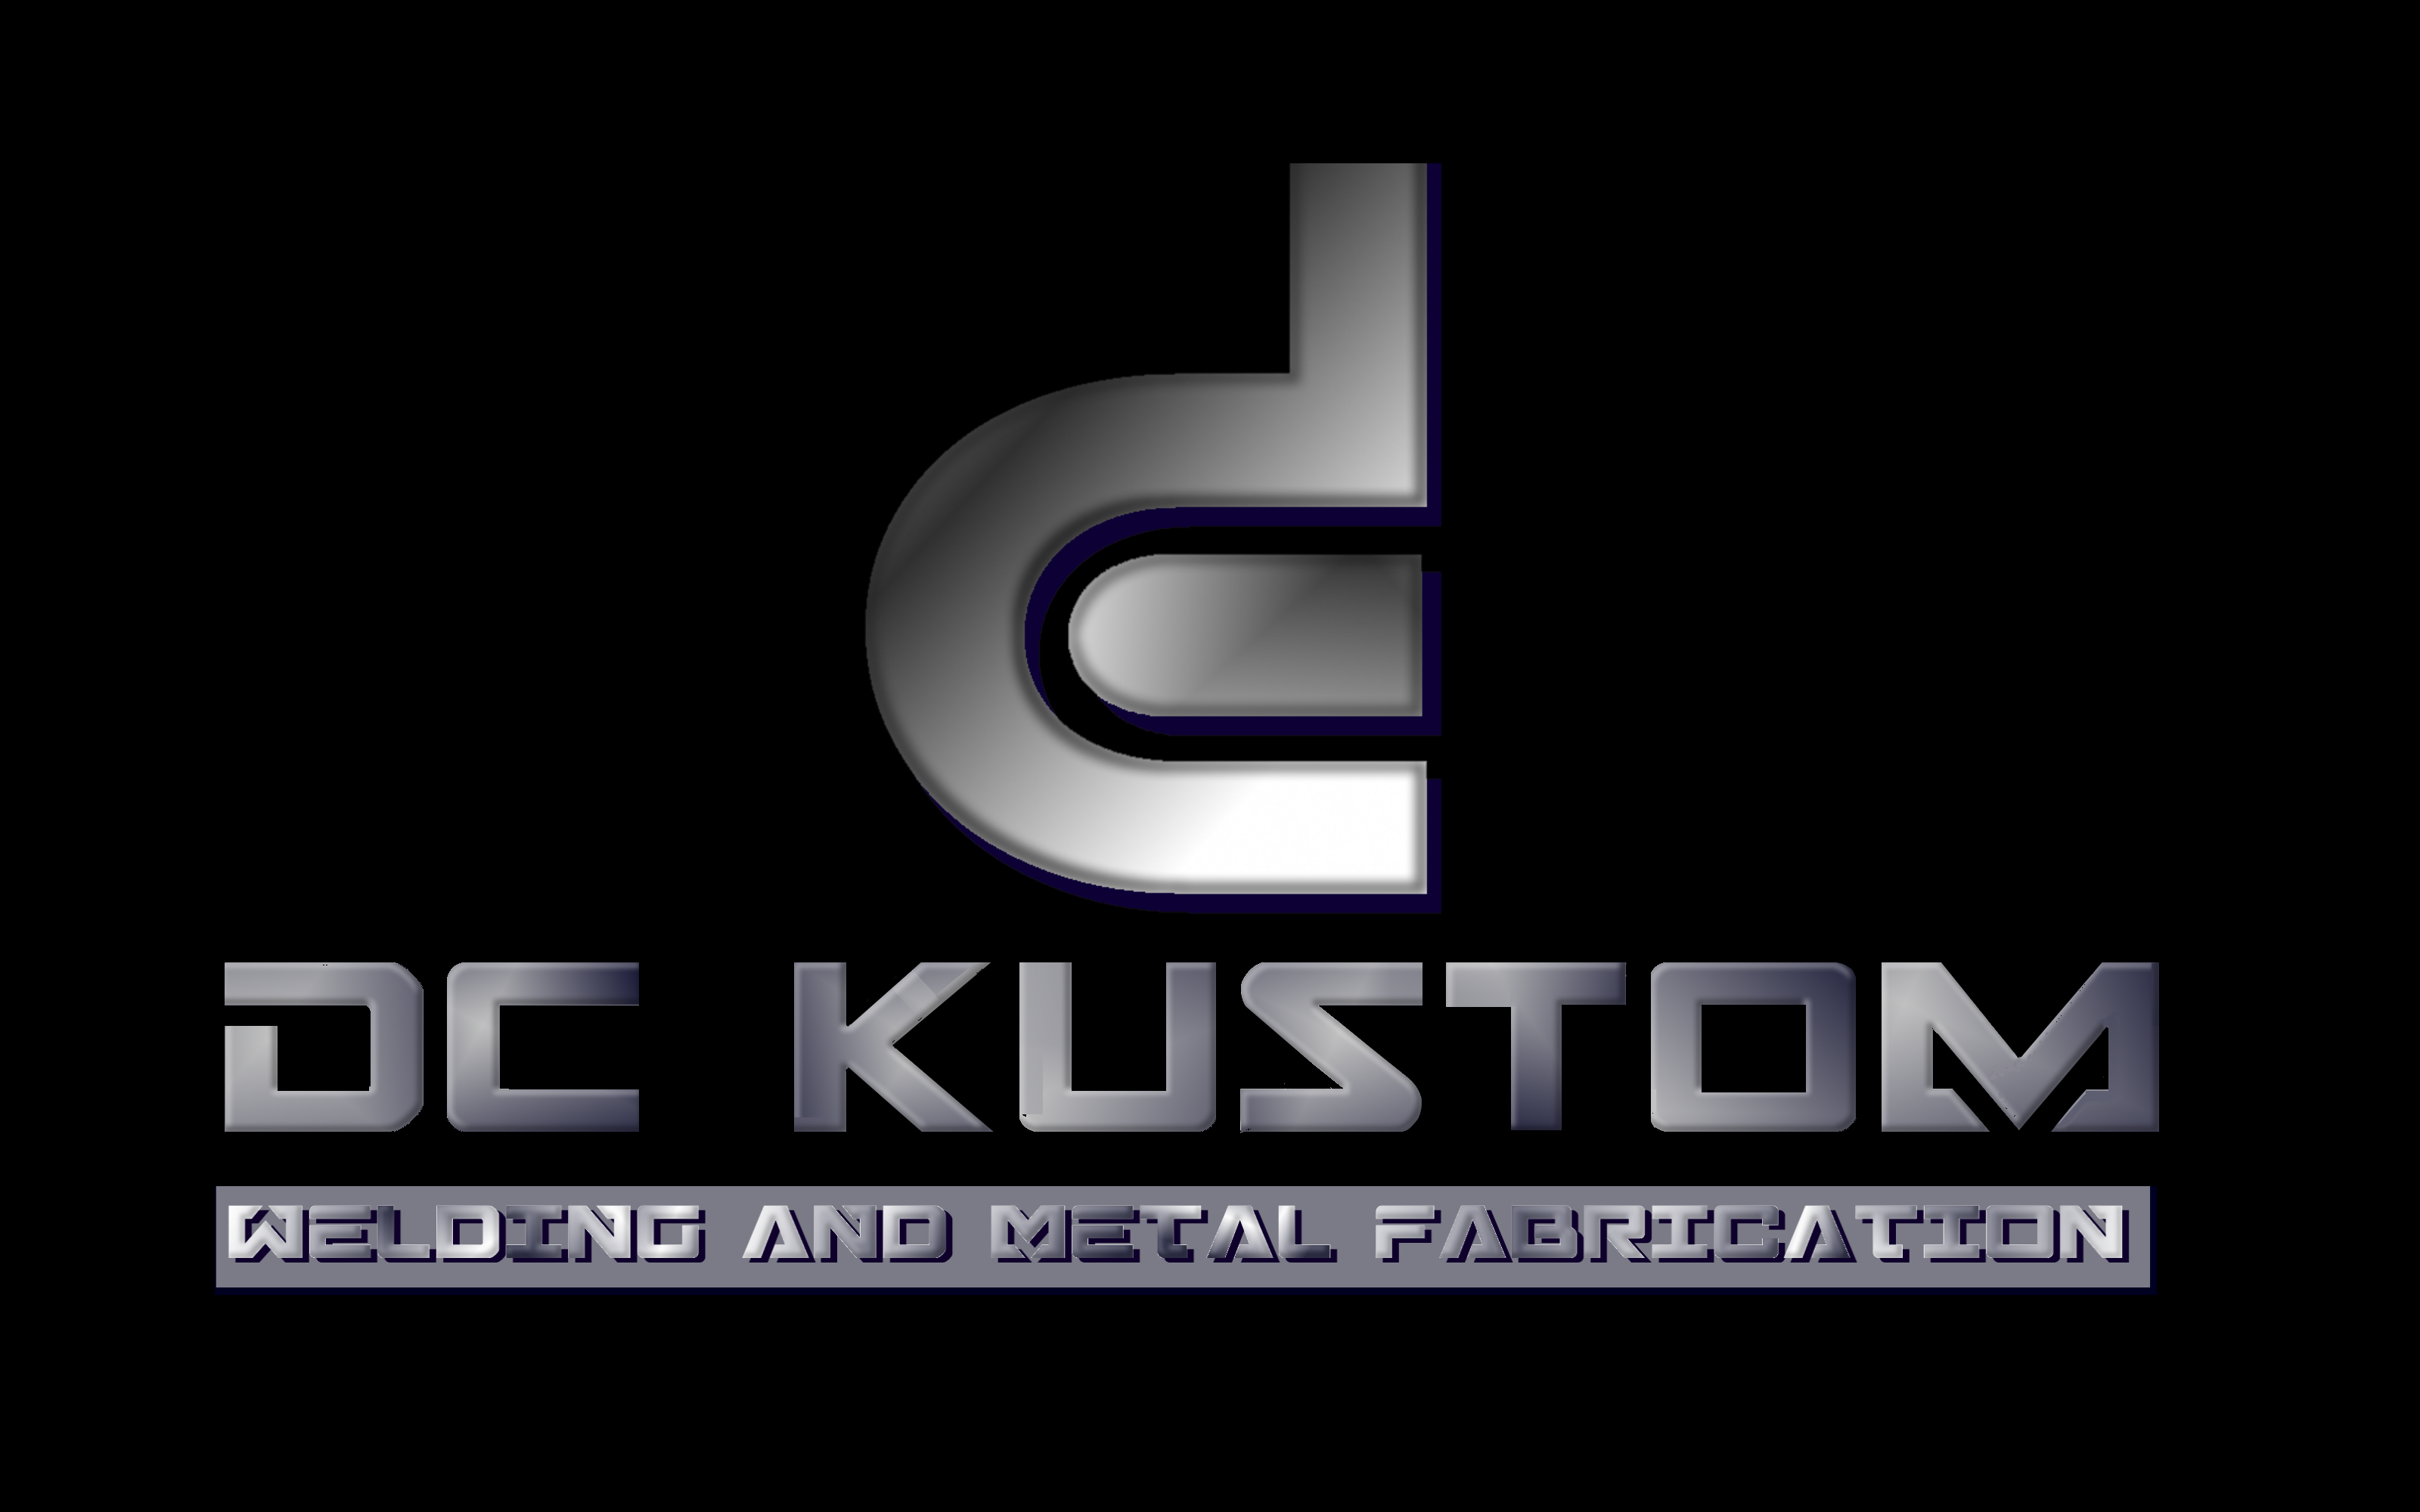 Logo Design by Roberto Bassi - Entry No. 170 in the Logo Design Contest Imaginative Logo Design for DC KUSTOM WELDING & METAL FABRICATION.